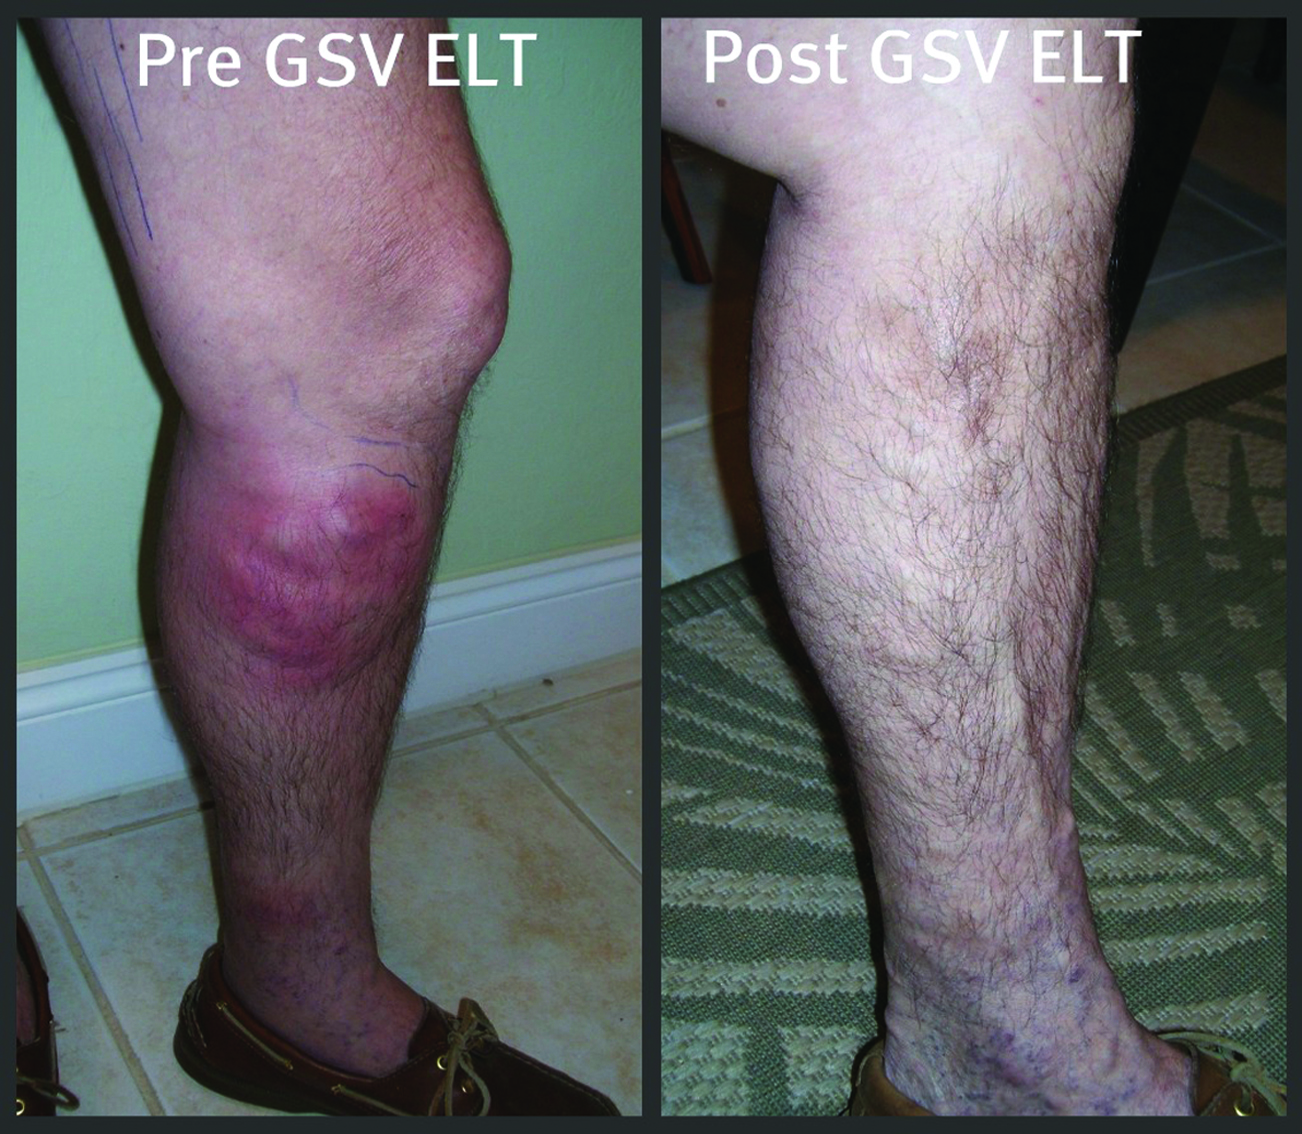 Top 7 Reasons to Get Your Leg Vein Evaluation